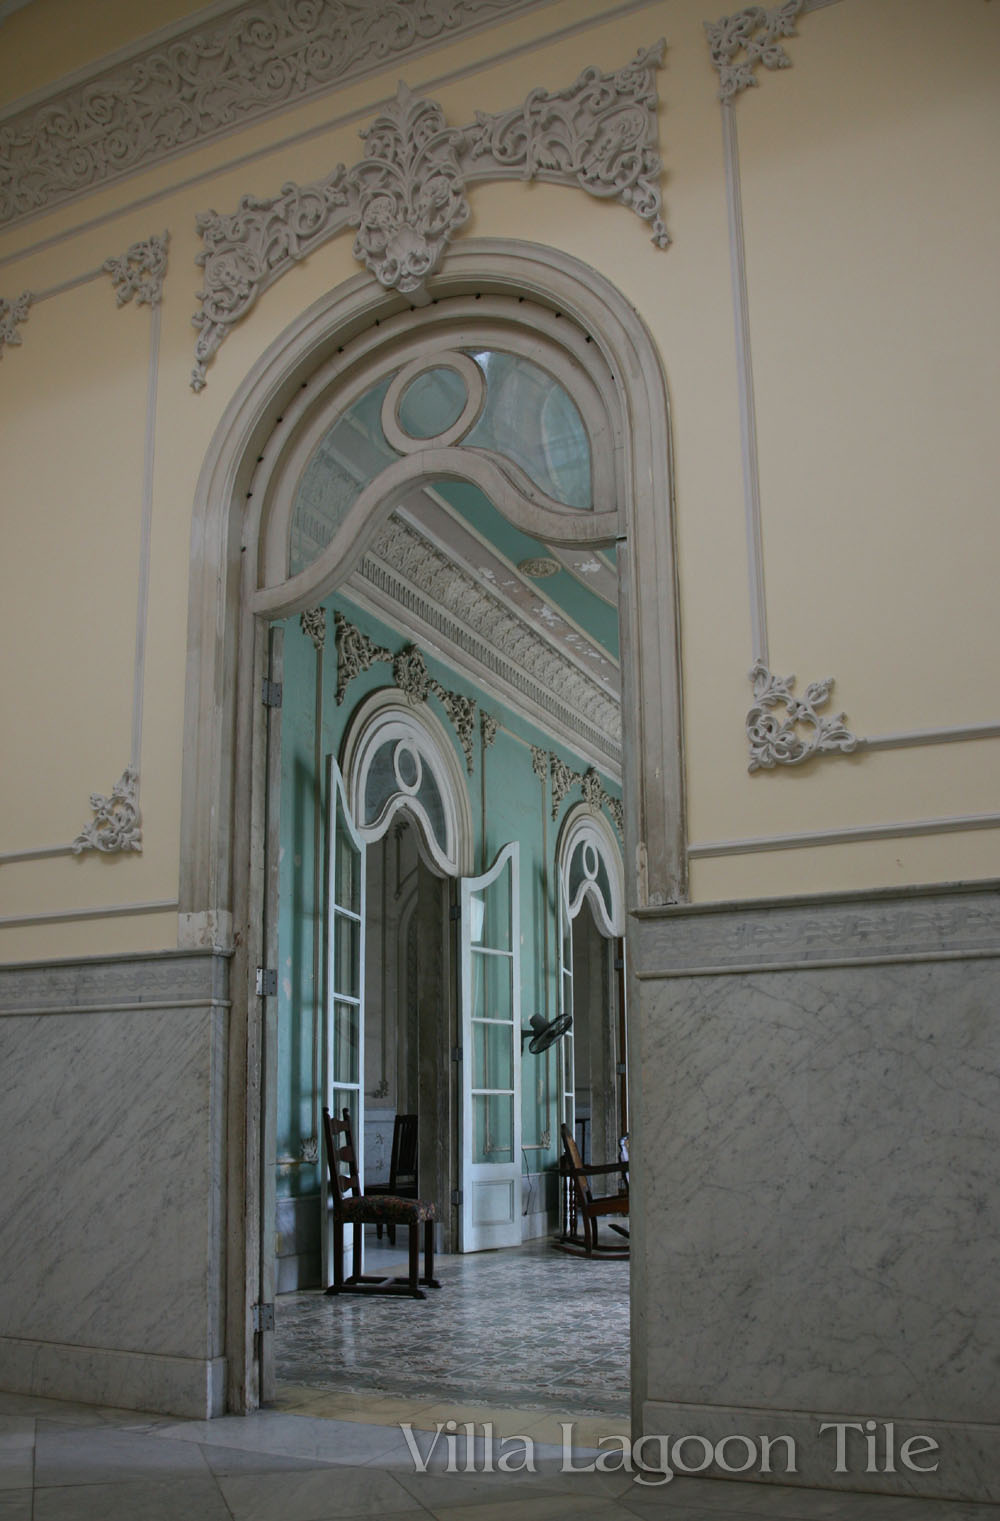 Interior of the Ferrer palace home on the town square in Cienfuegos, Cuba